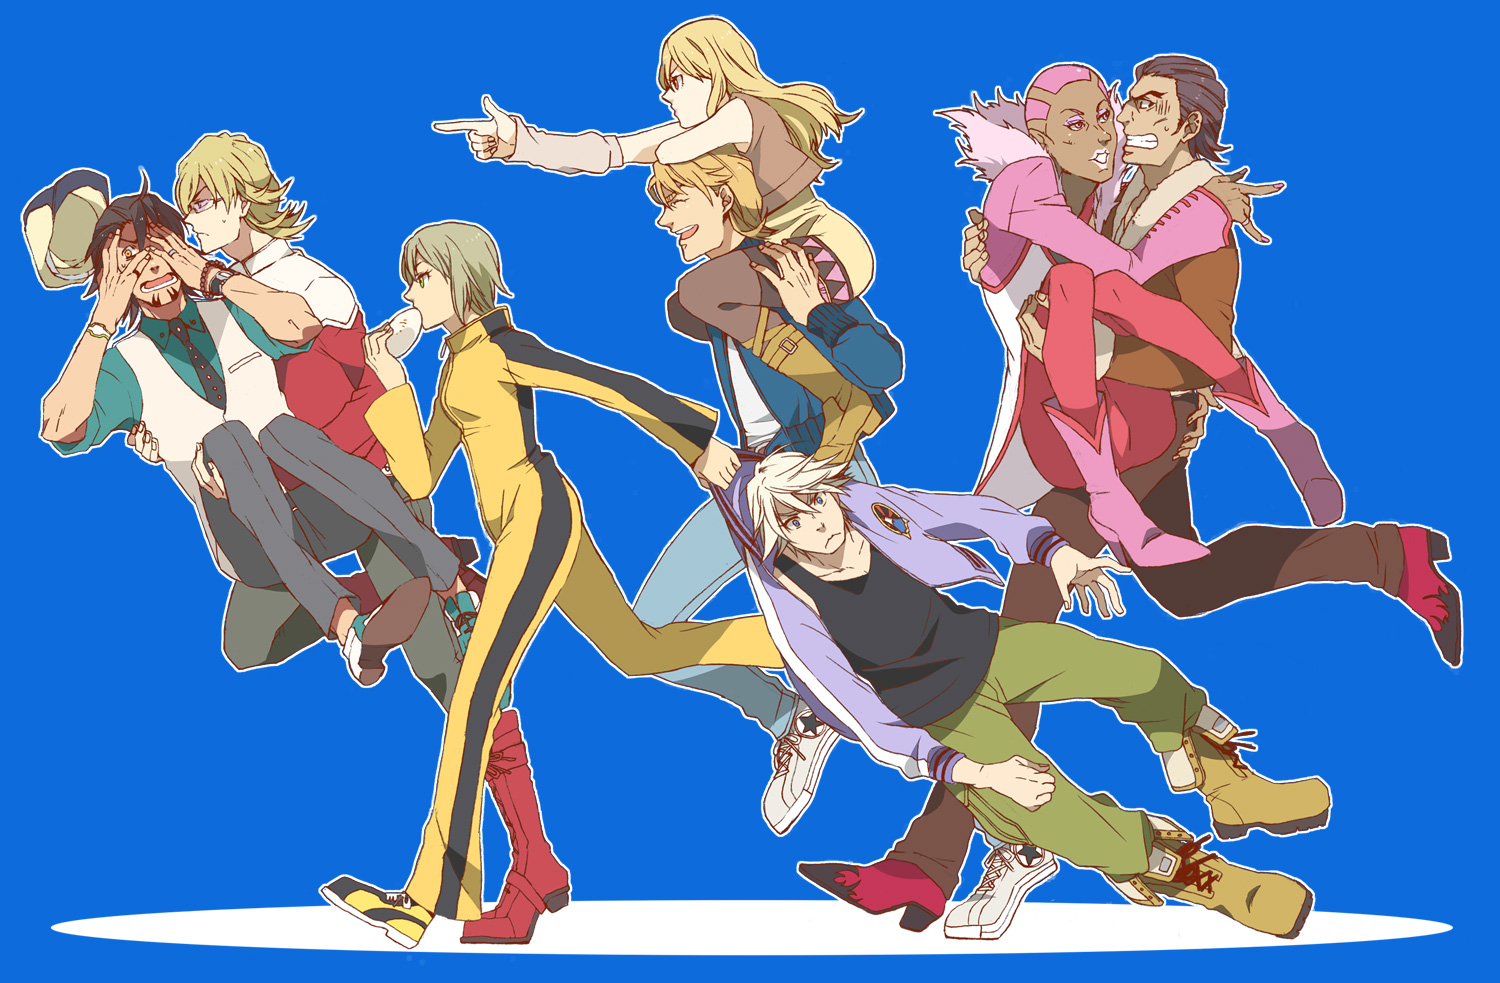 Fire Emblem Tiger And Bunny: TIGER & BUNNY Image #566254